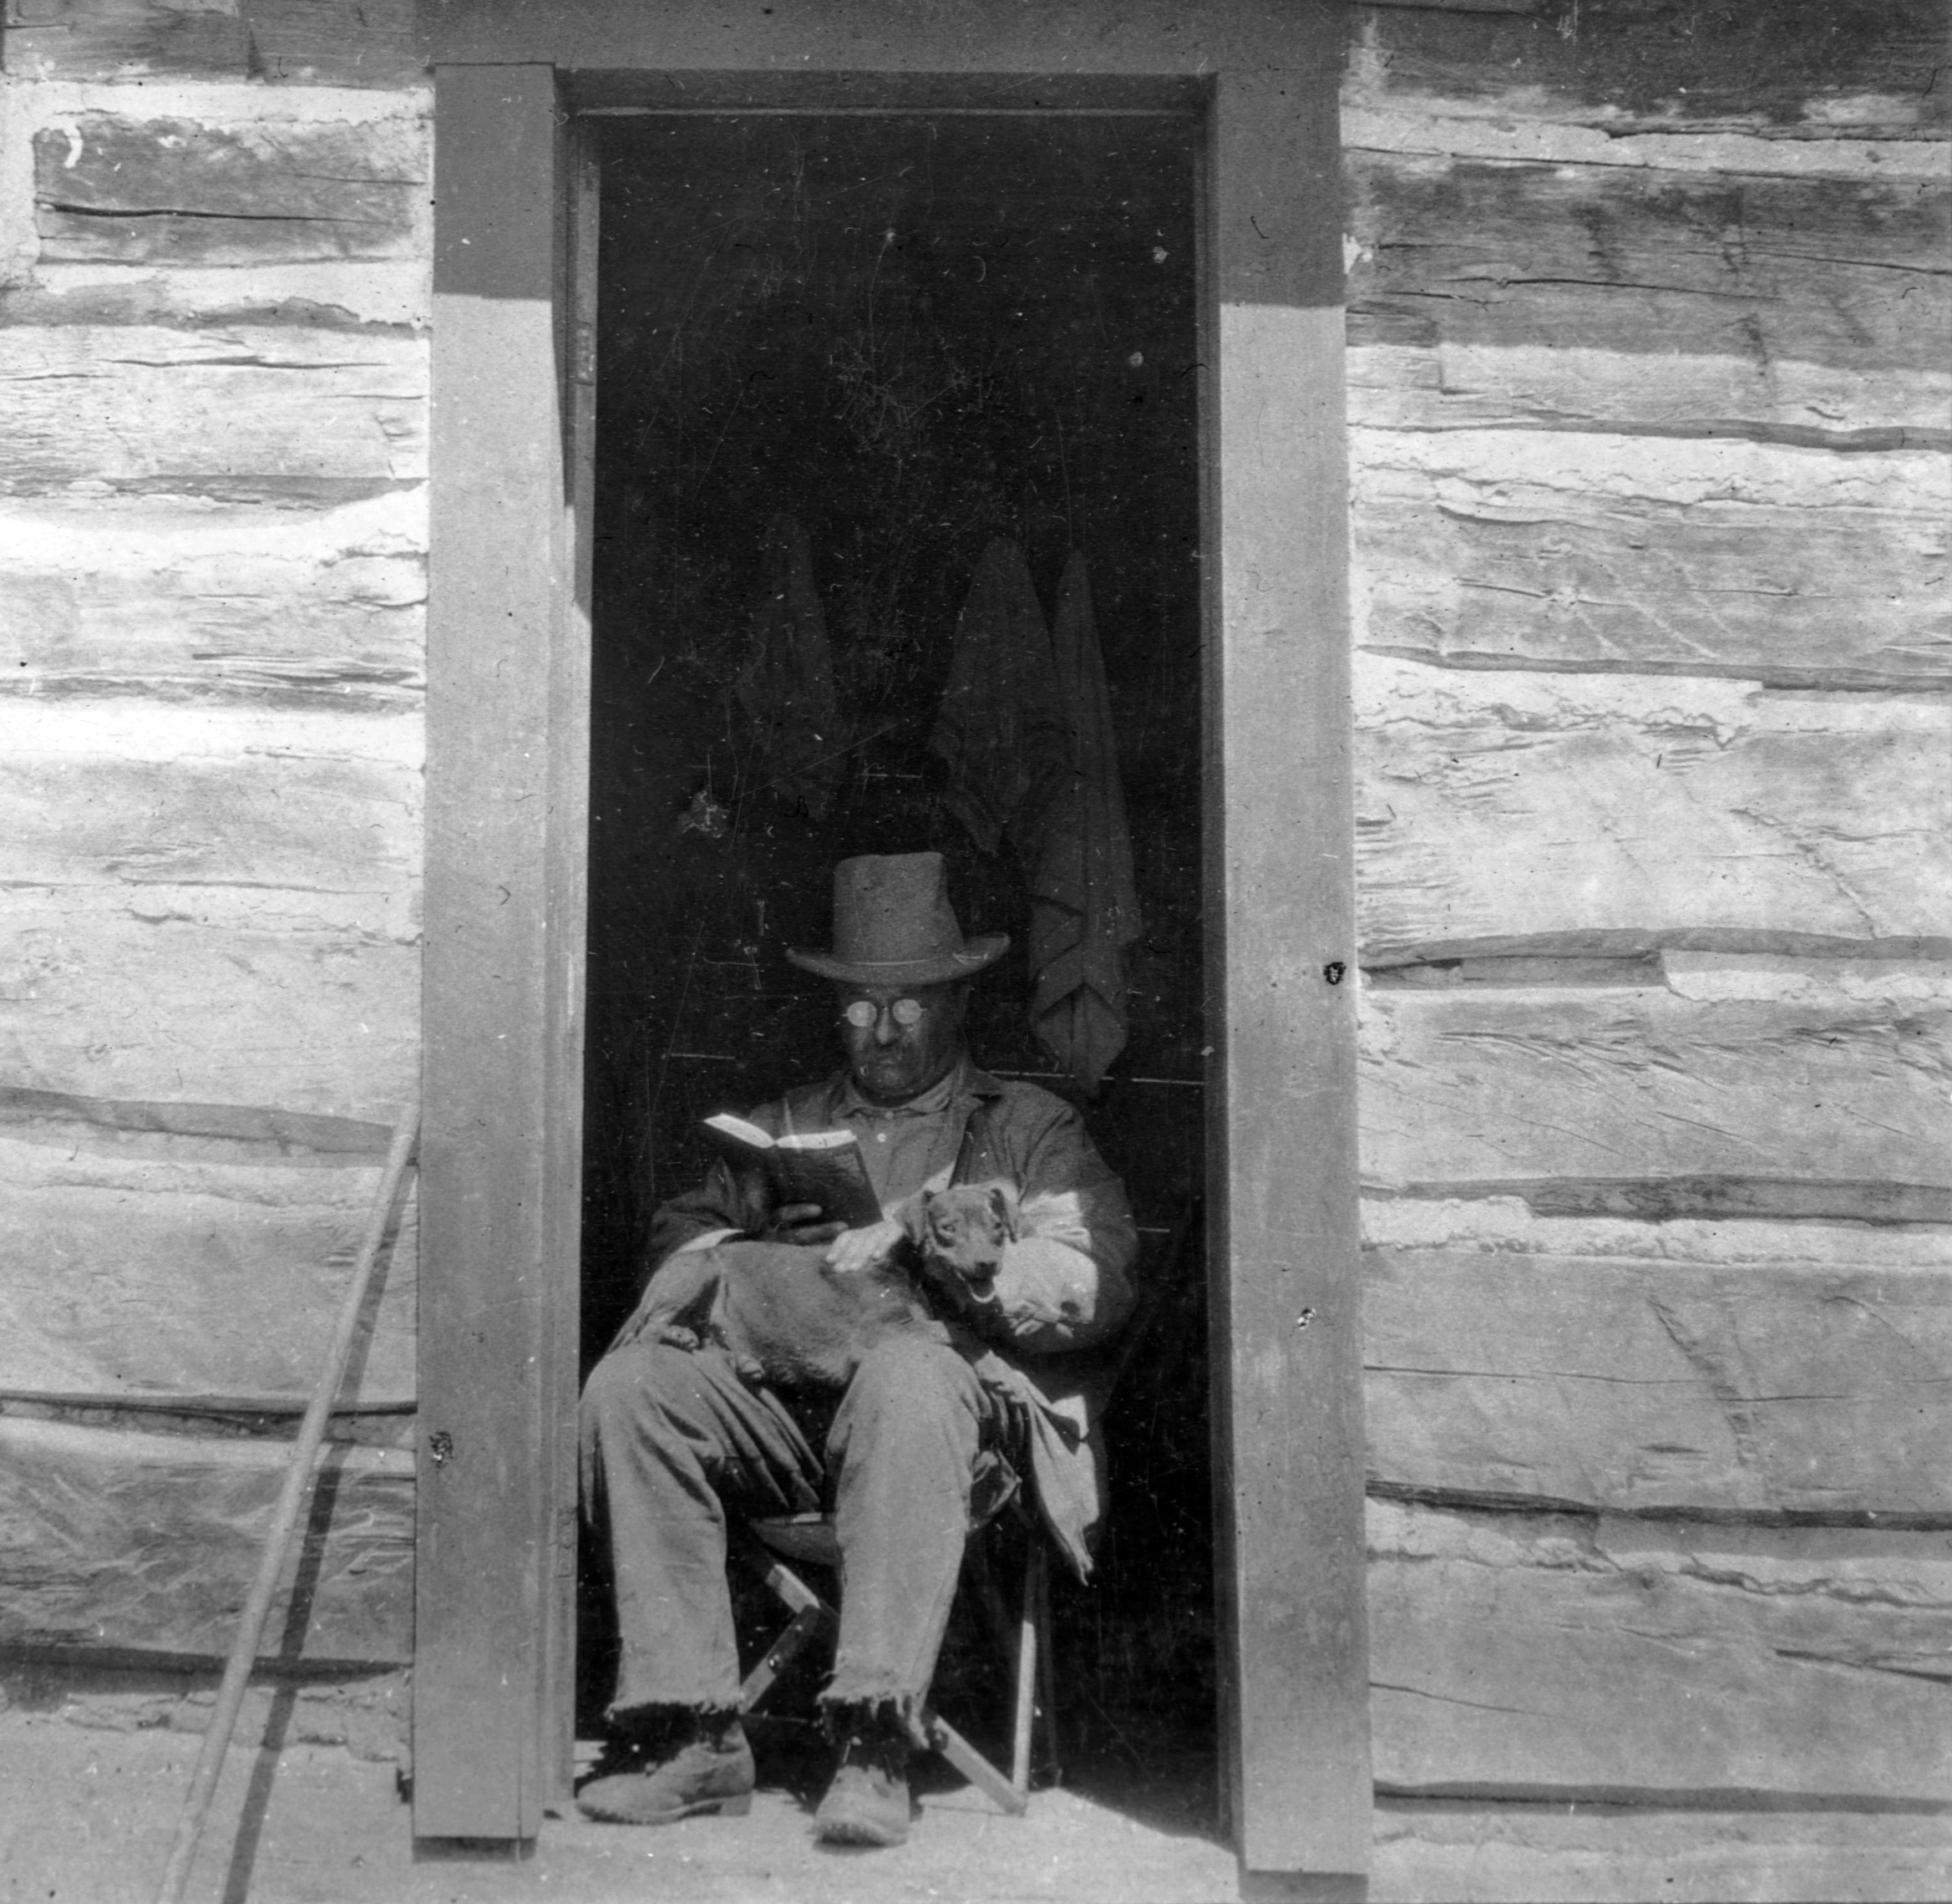 Theodore Roosevelt in the doorway of his West Divide Creek Ranch house reading a book, 1905. (Credit: Alex Lambert/Library of Congress/Corbis/VCG/Getty Images)